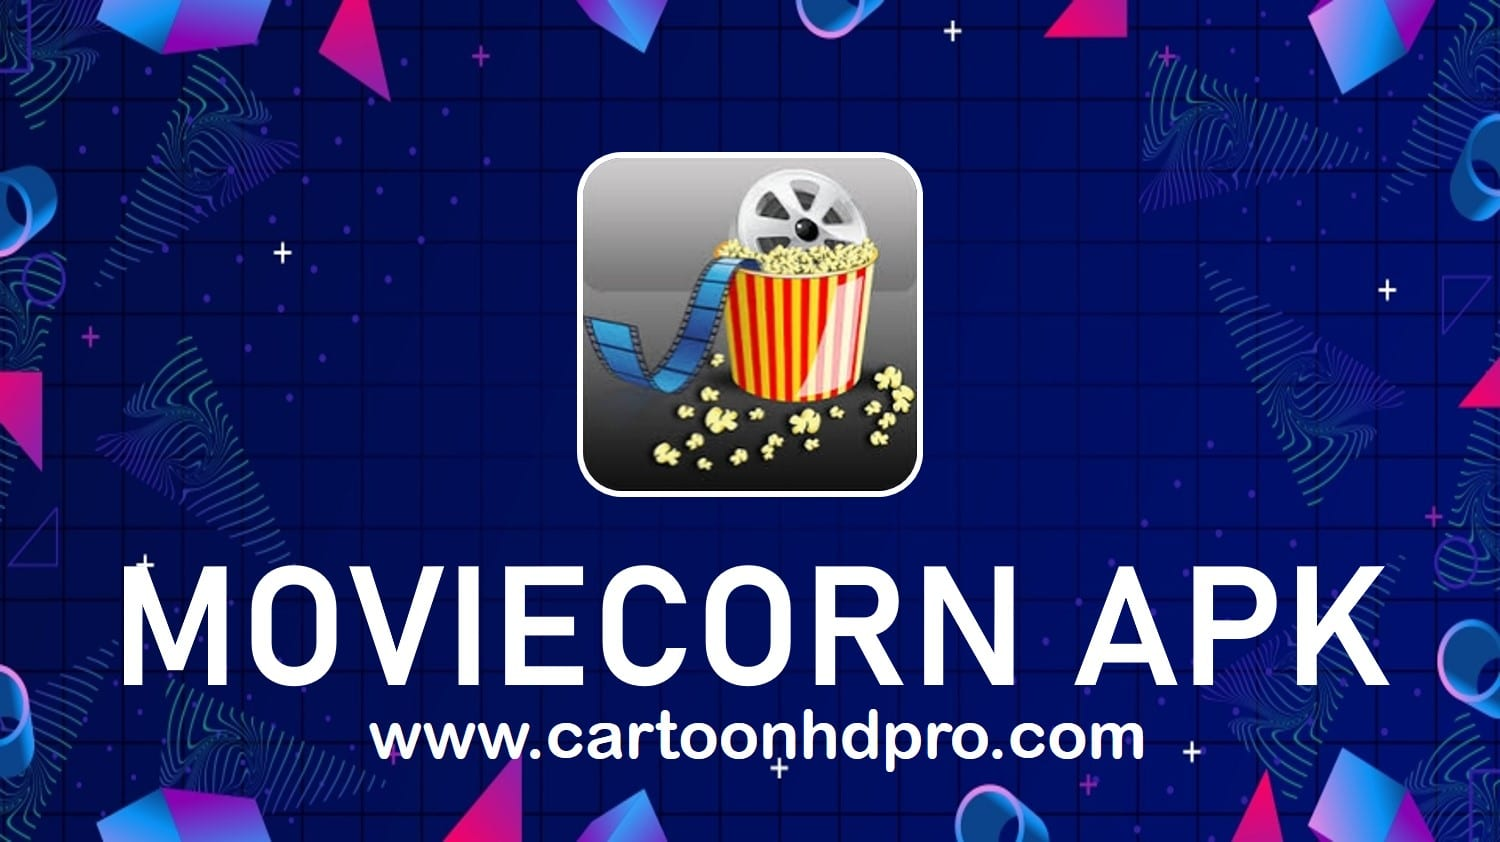 moviecorn apk download